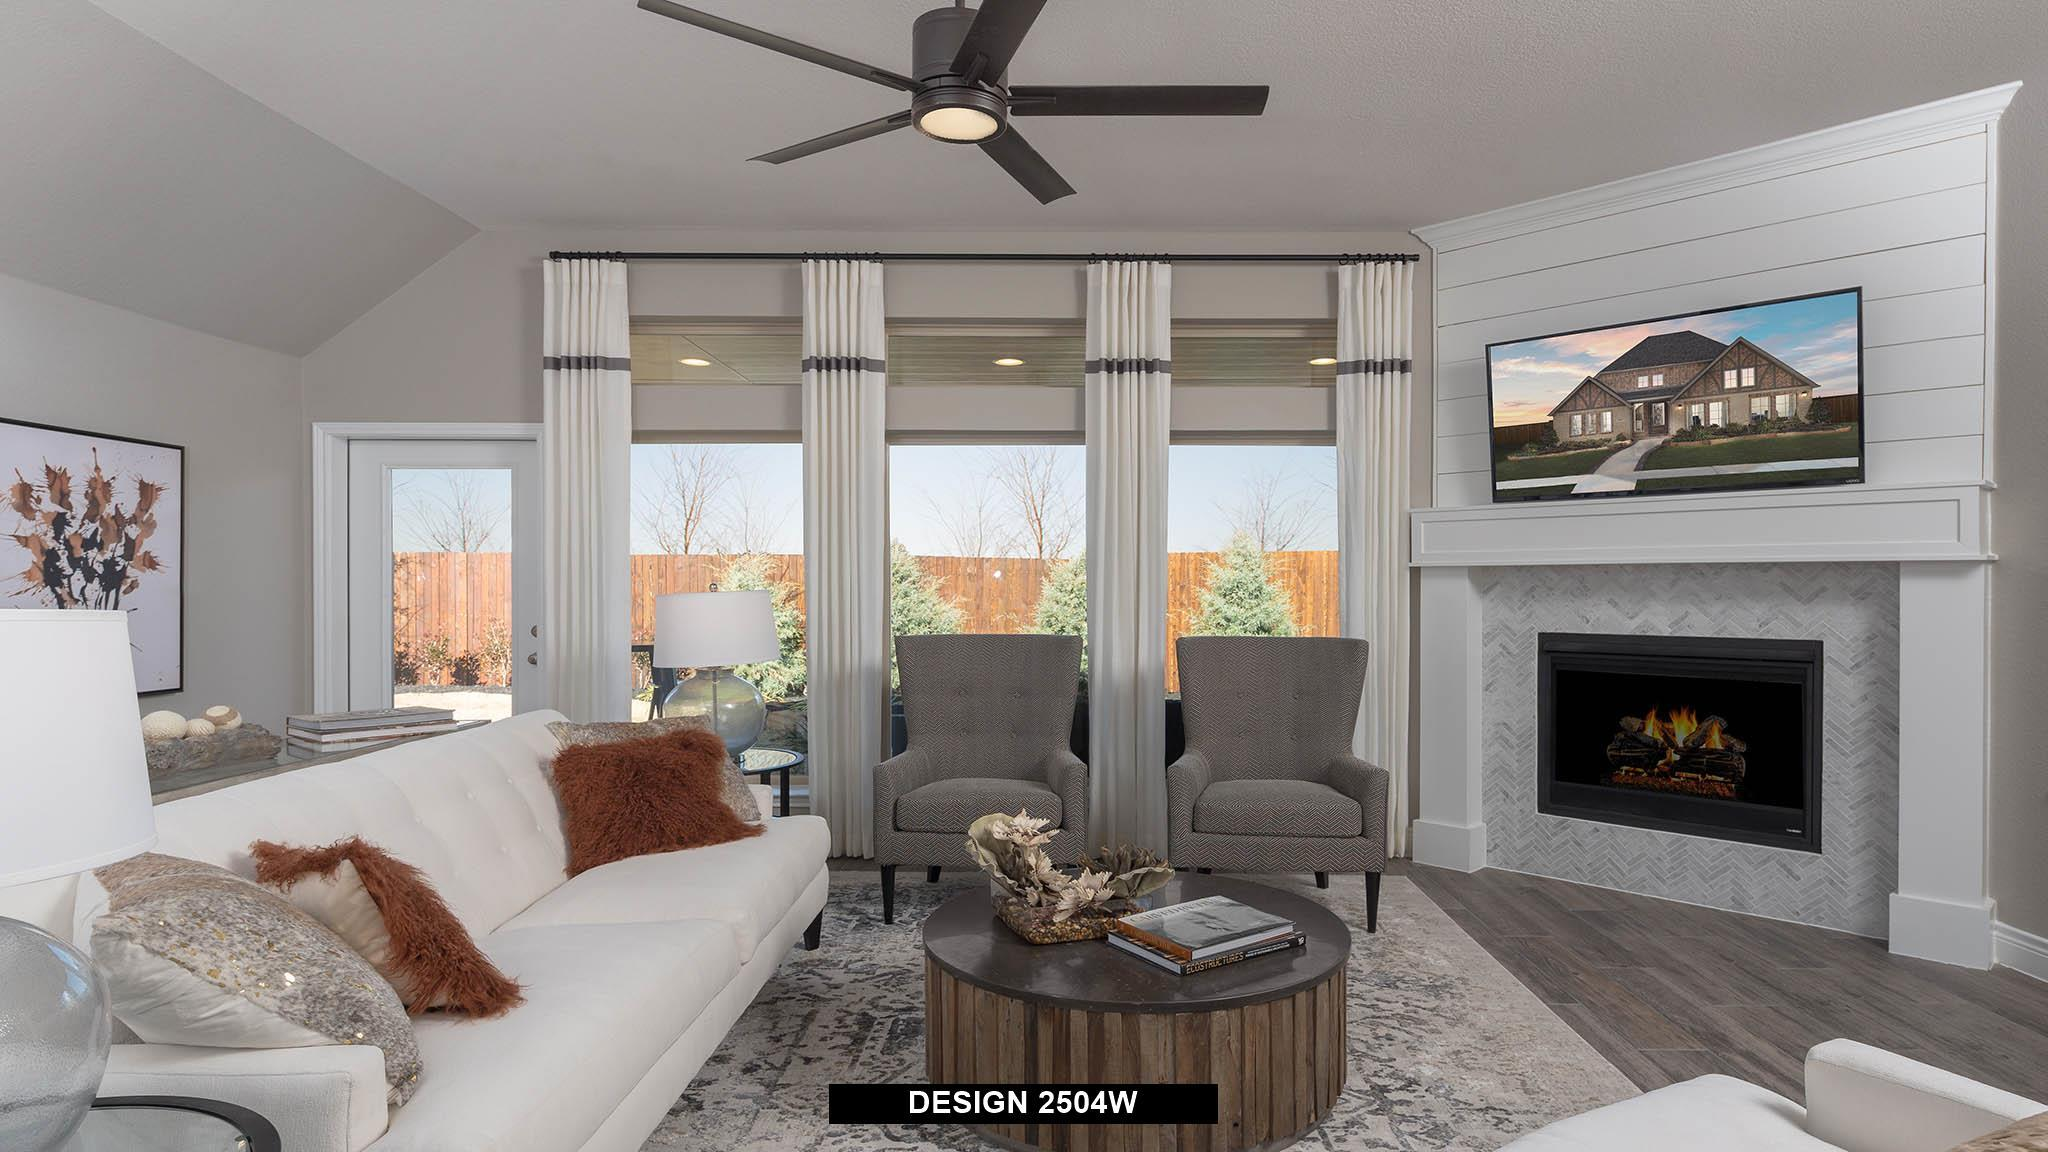 Living Area featured in the 2504W By Perry Homes in Dallas, TX